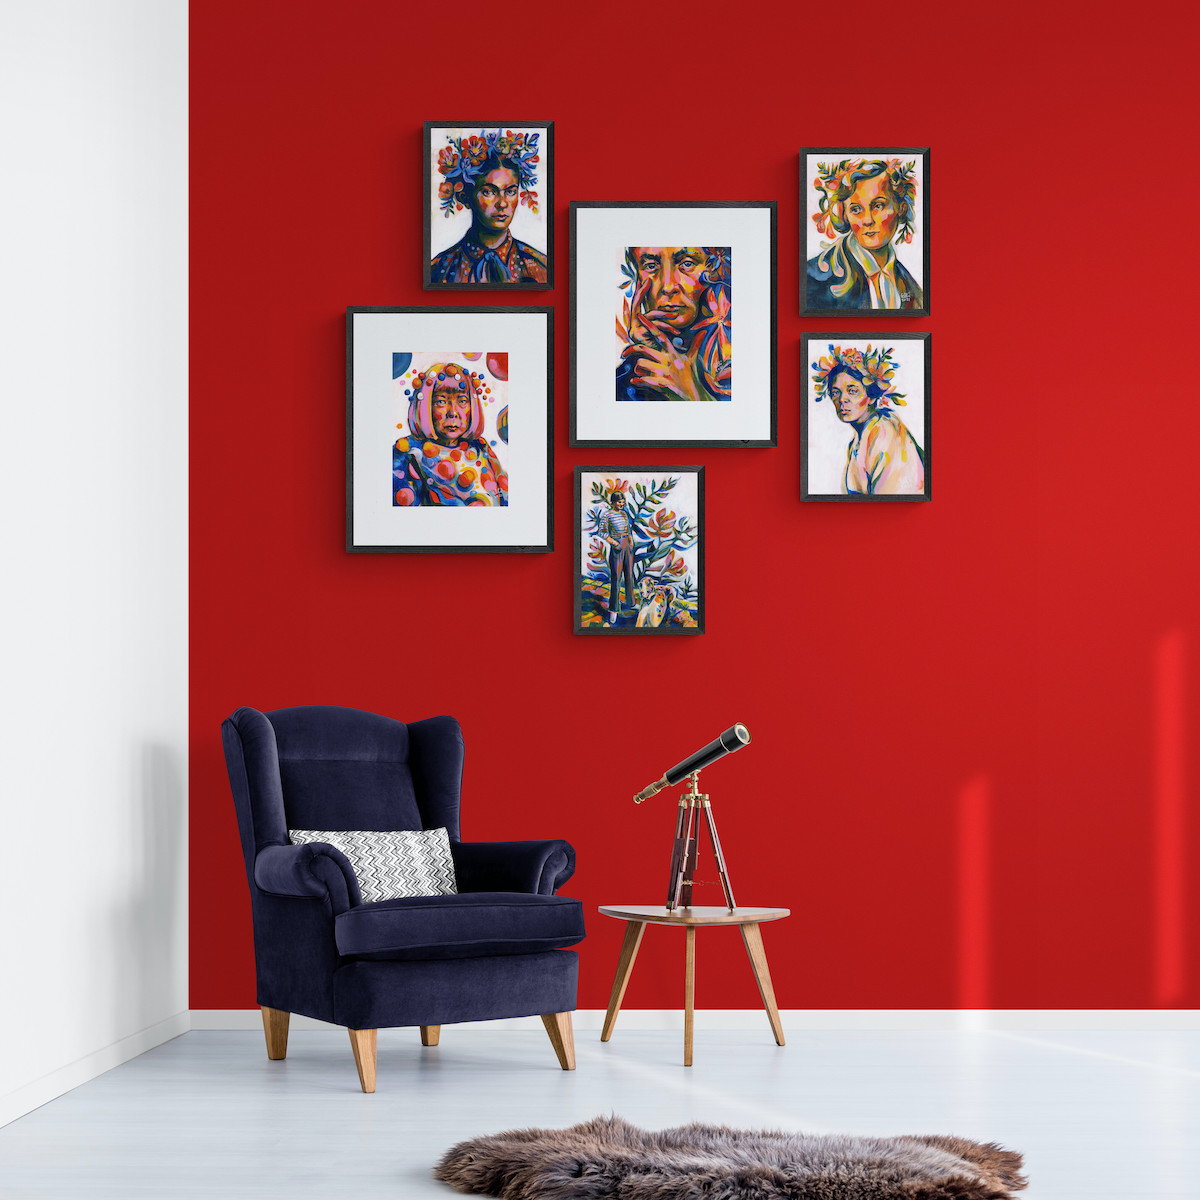 Art Prints with girl power to your statement living room. Interior design mockup. Elli Maanpää. 2021